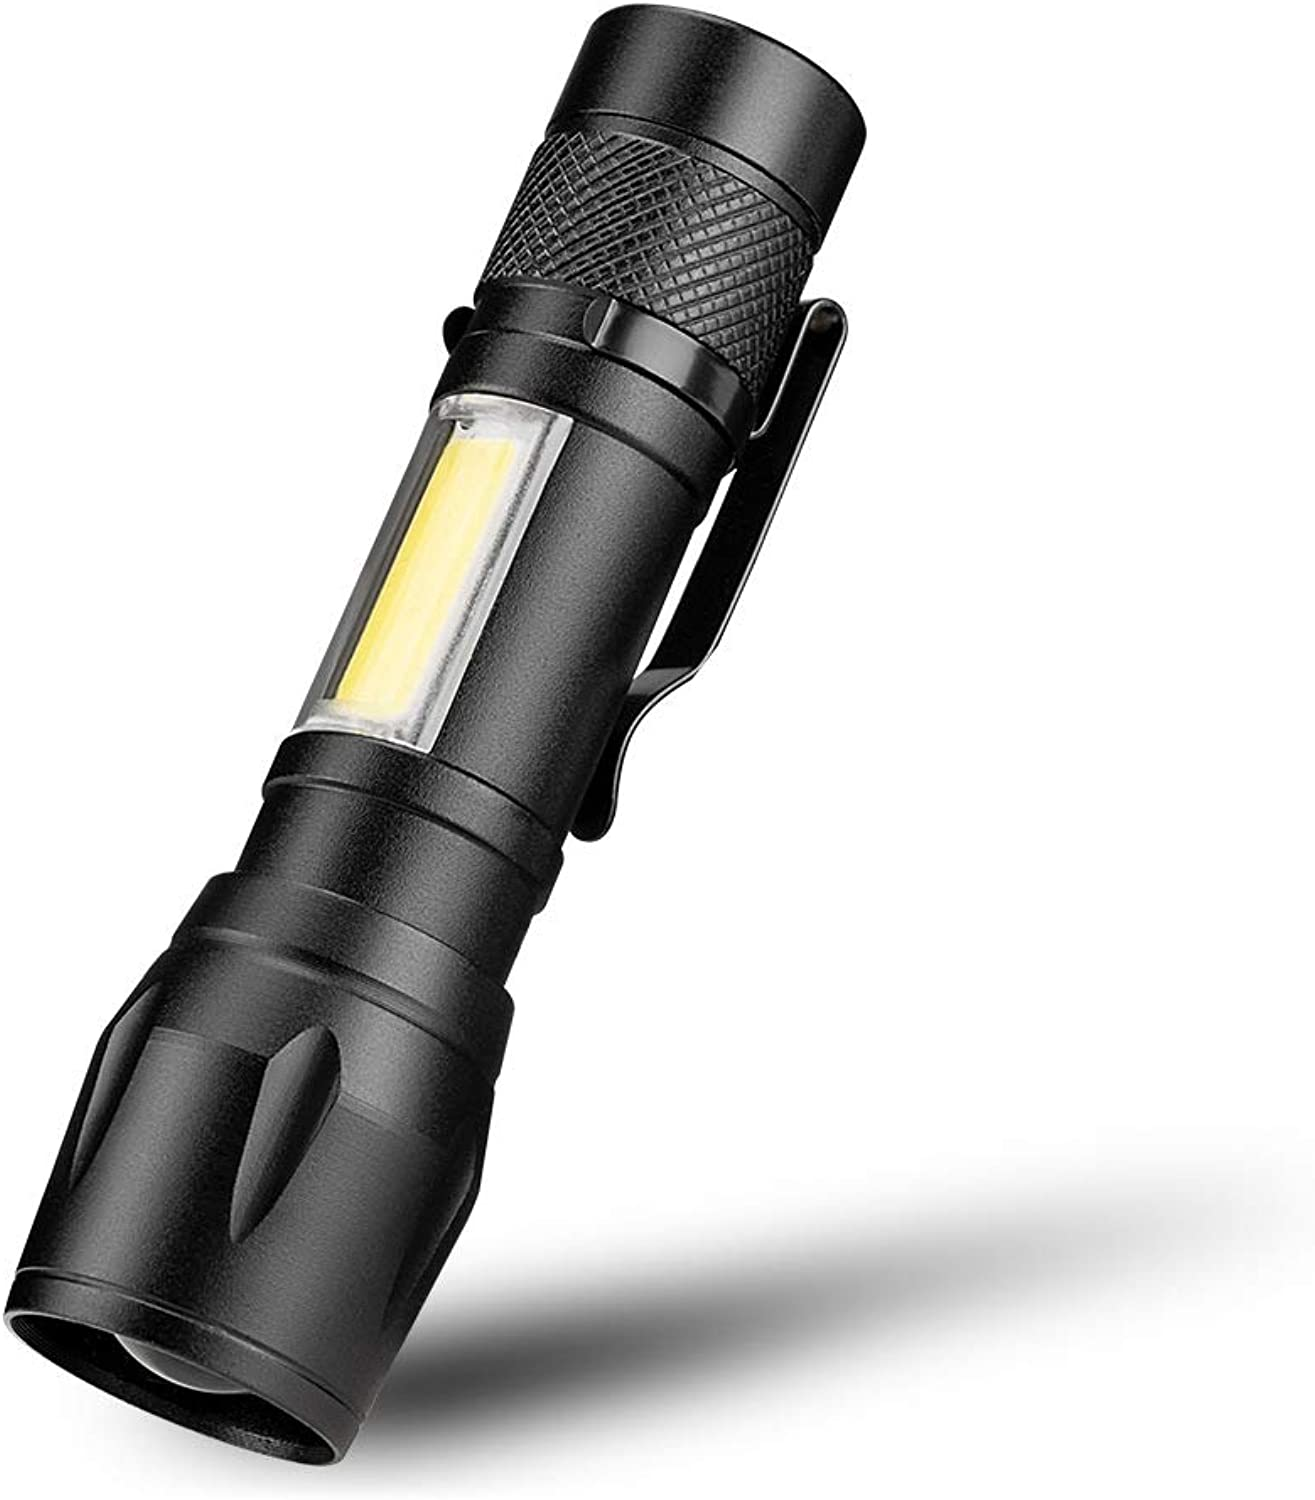 LED Torch COB+LED with Clip Small Flashlight Telescopic Zoom Aluminum Outdoor Flashlight for Camping, Hiking and Emergency Use 2Pcs